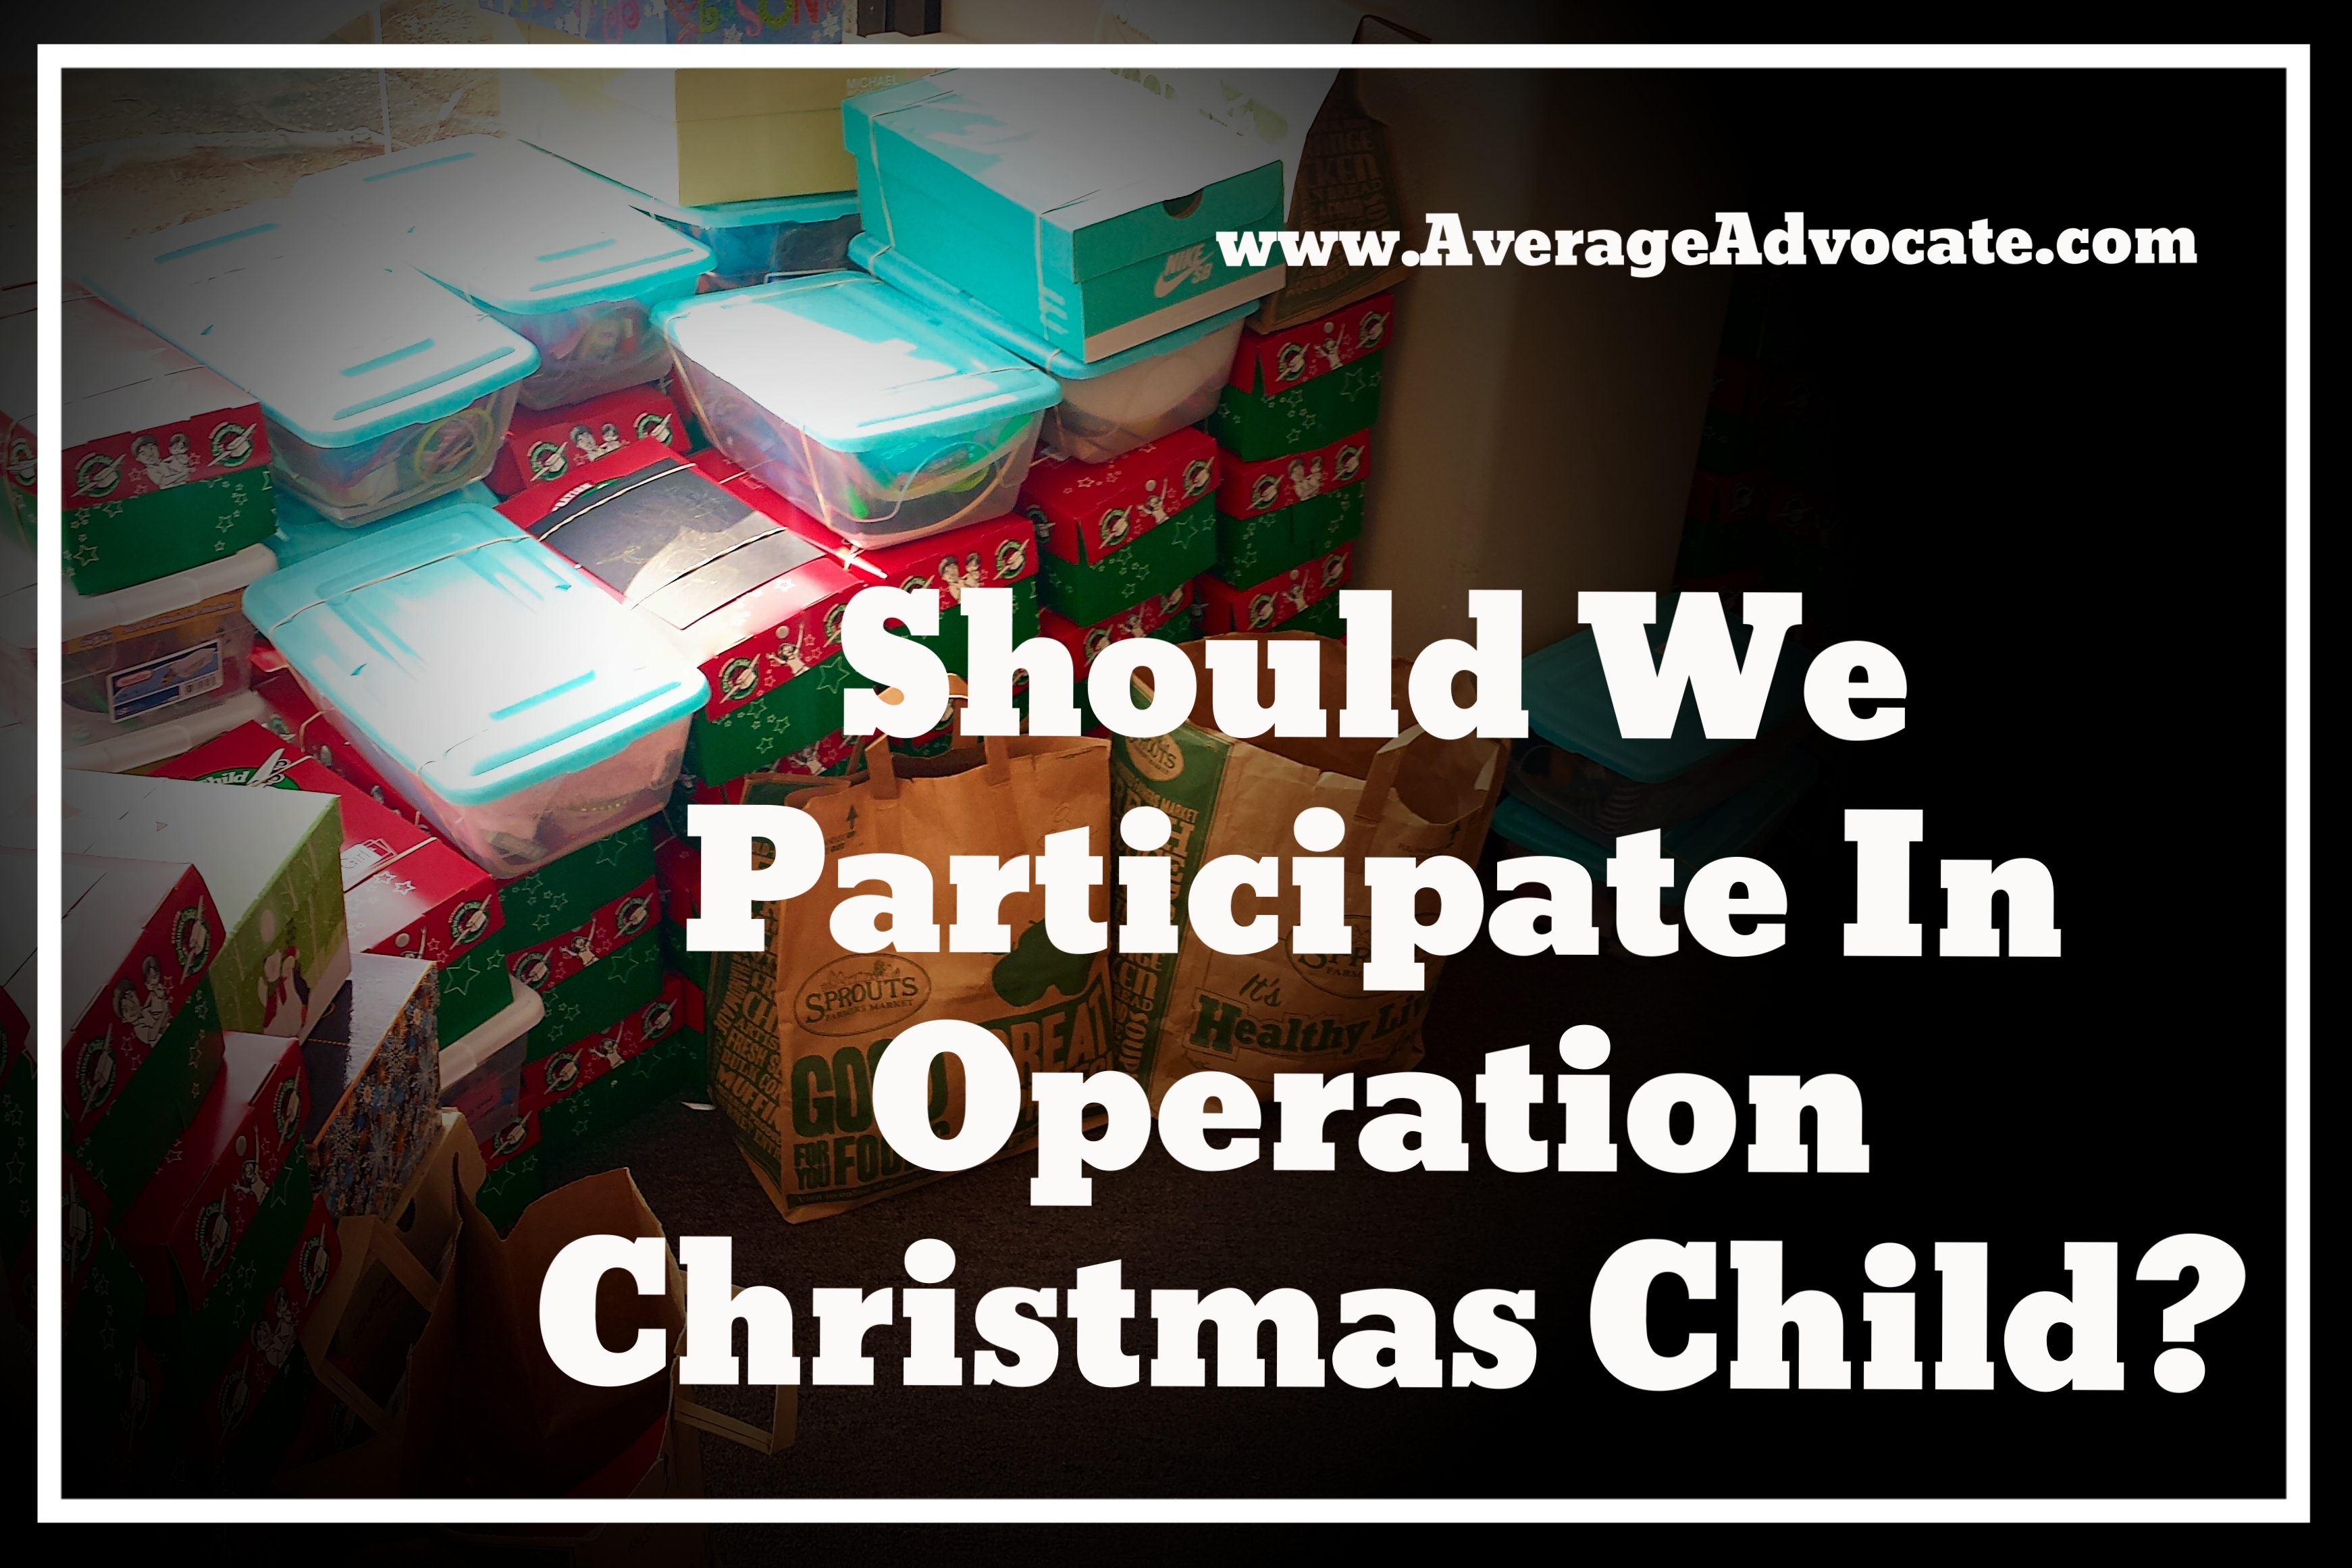 Operation Christmas Child 2019 Flyer.Should We Participate In Operation Christmas Child The